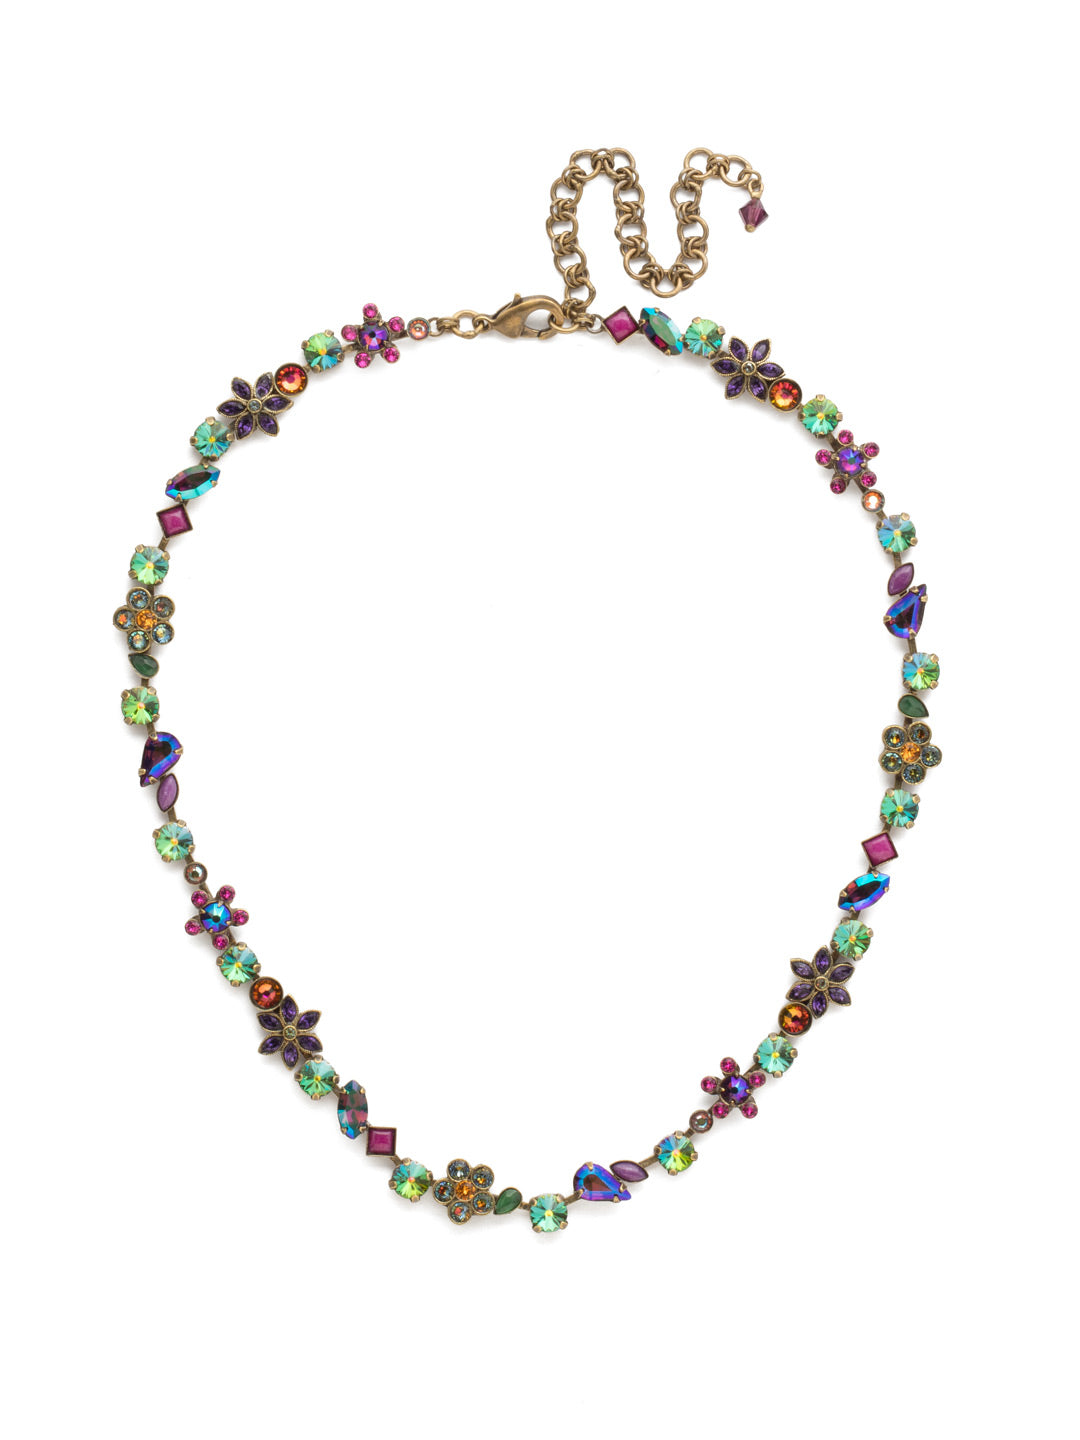 Classic Crystal and Opaque Stone Floral Necklace - NBL12AGVO